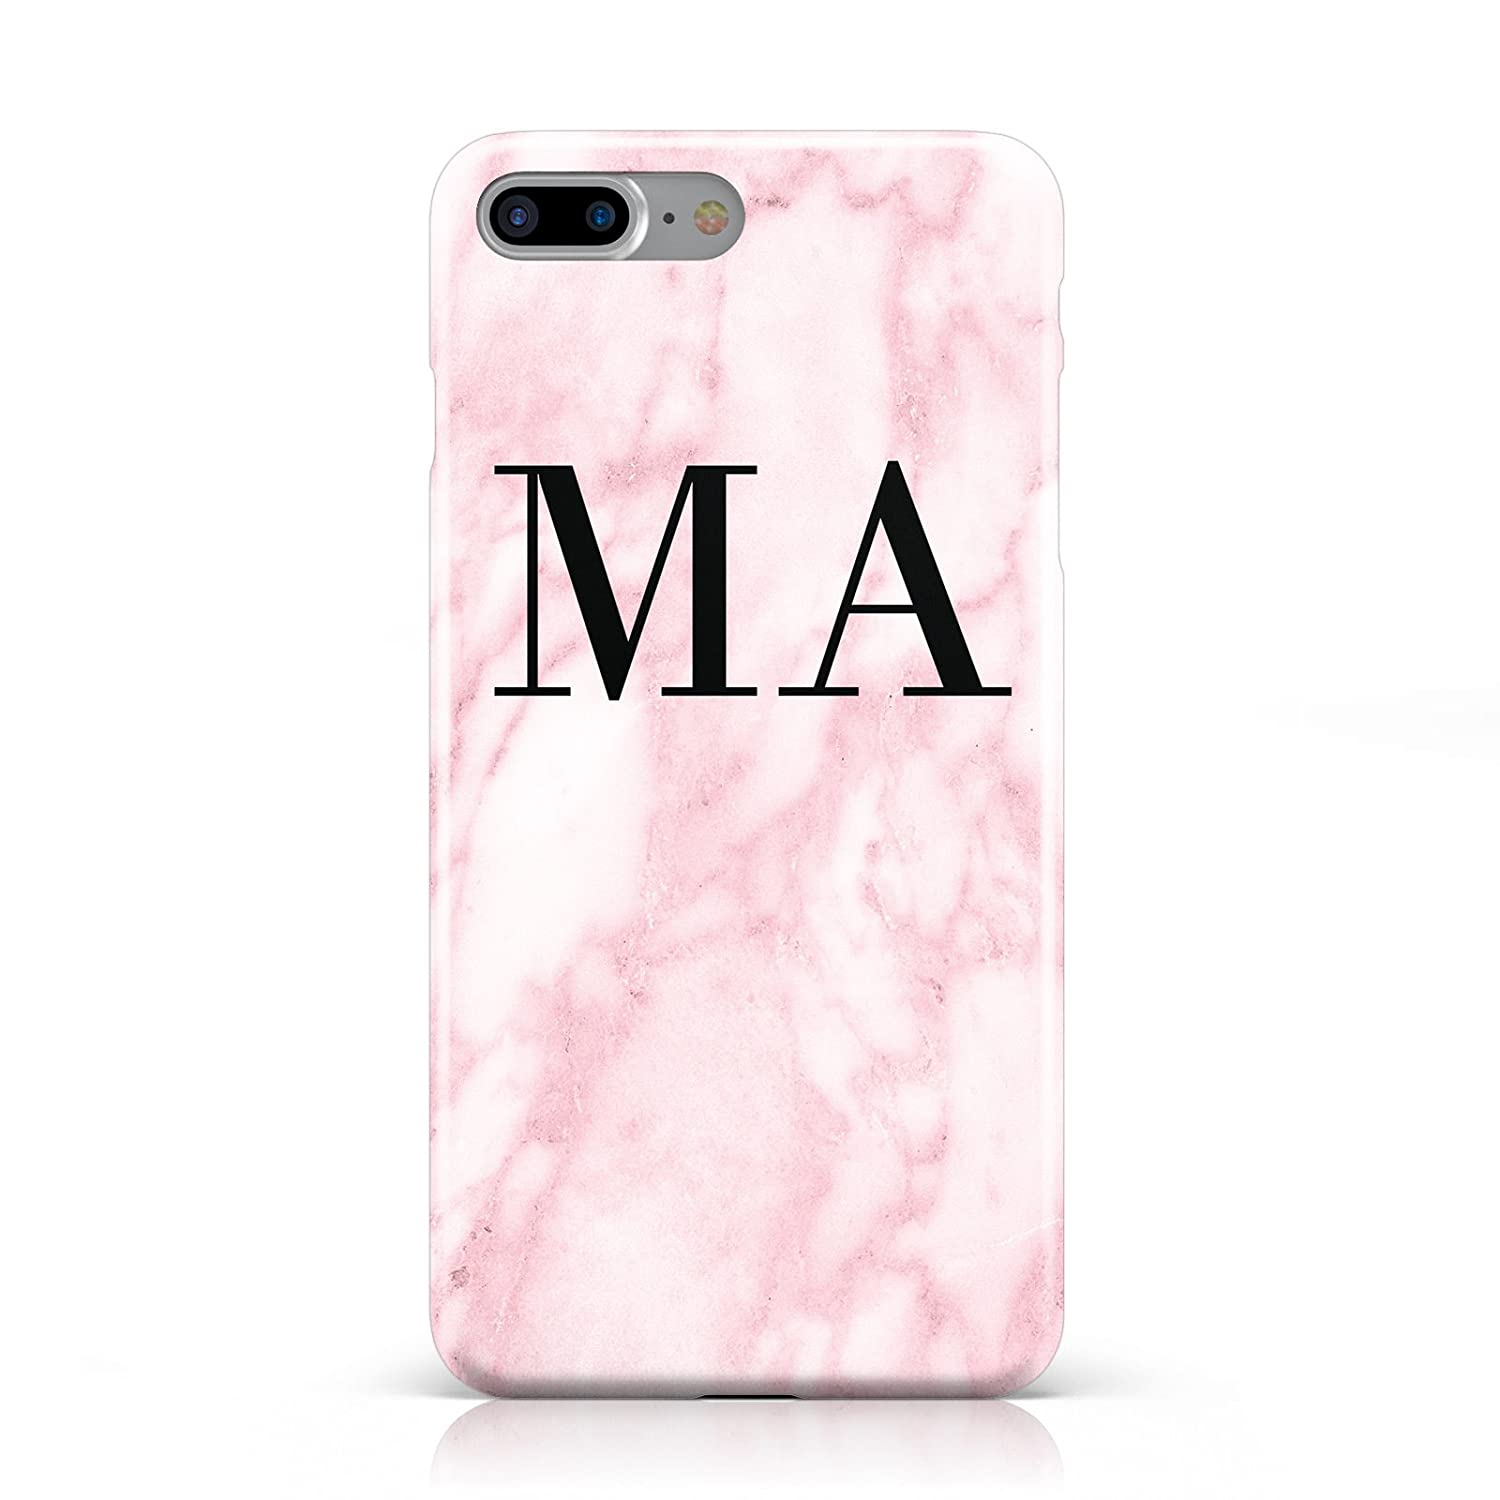 PERSONALISED PINKY MARBLE INITIALS MOBILE PHONE CASE Amazon